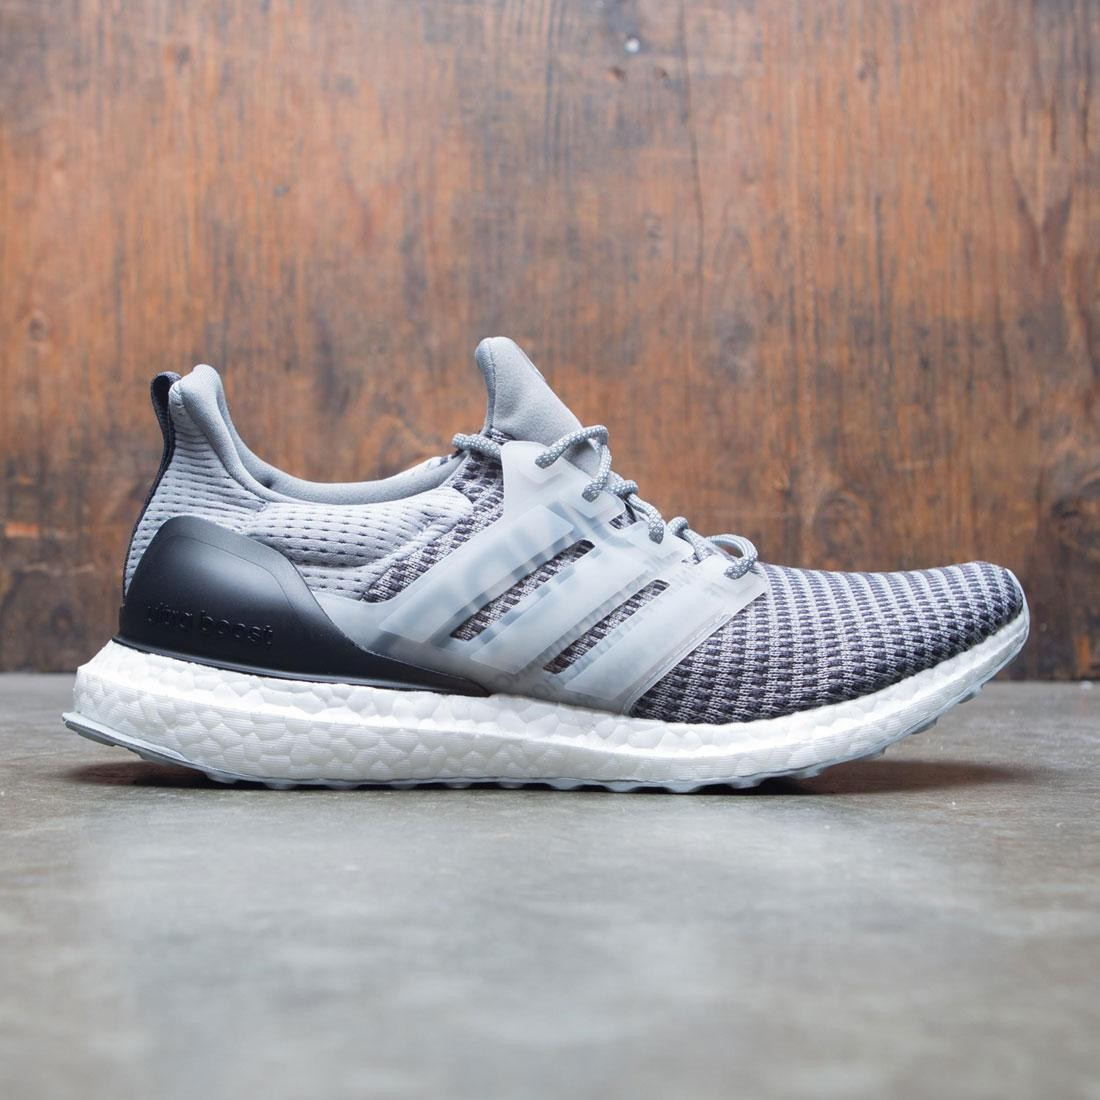 695c1424285 Adidas x Undefeated Men UltraBOOST gray shift grey cinder utility black